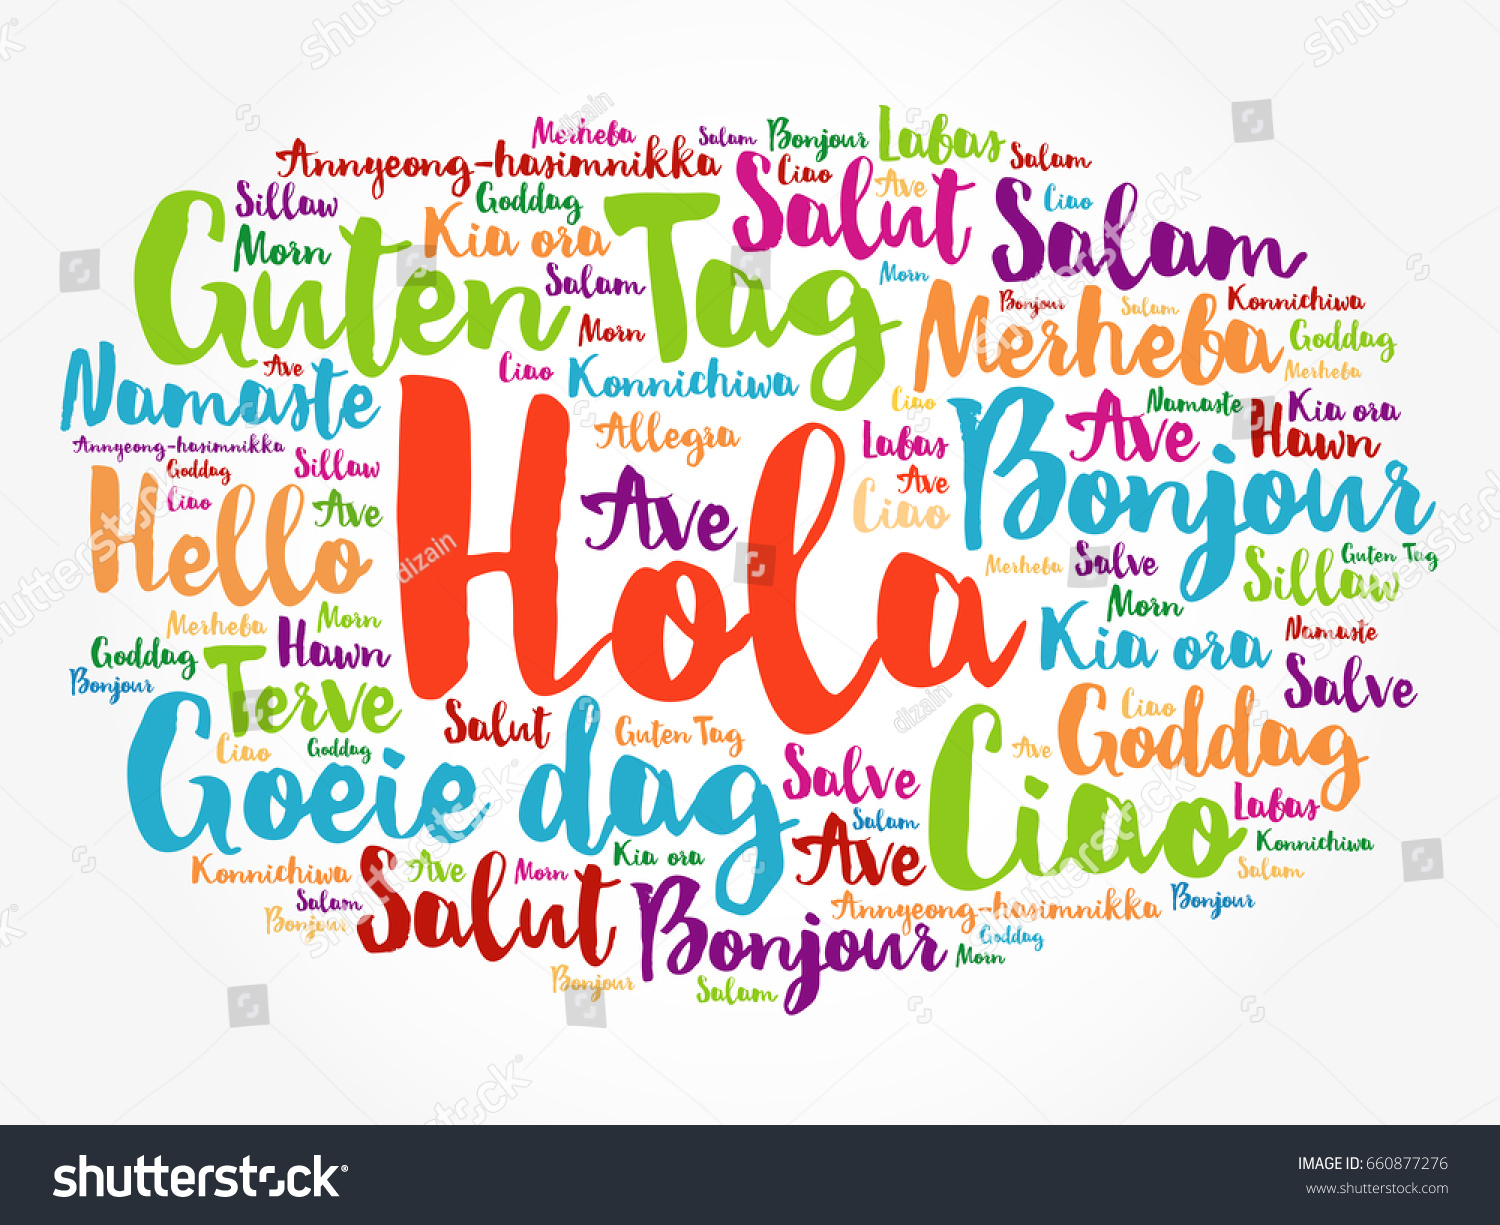 Hola hello greeting spanish word cloud stock vector 660877276 hola hello greeting in spanish word cloud in different languages of the world kristyandbryce Image collections